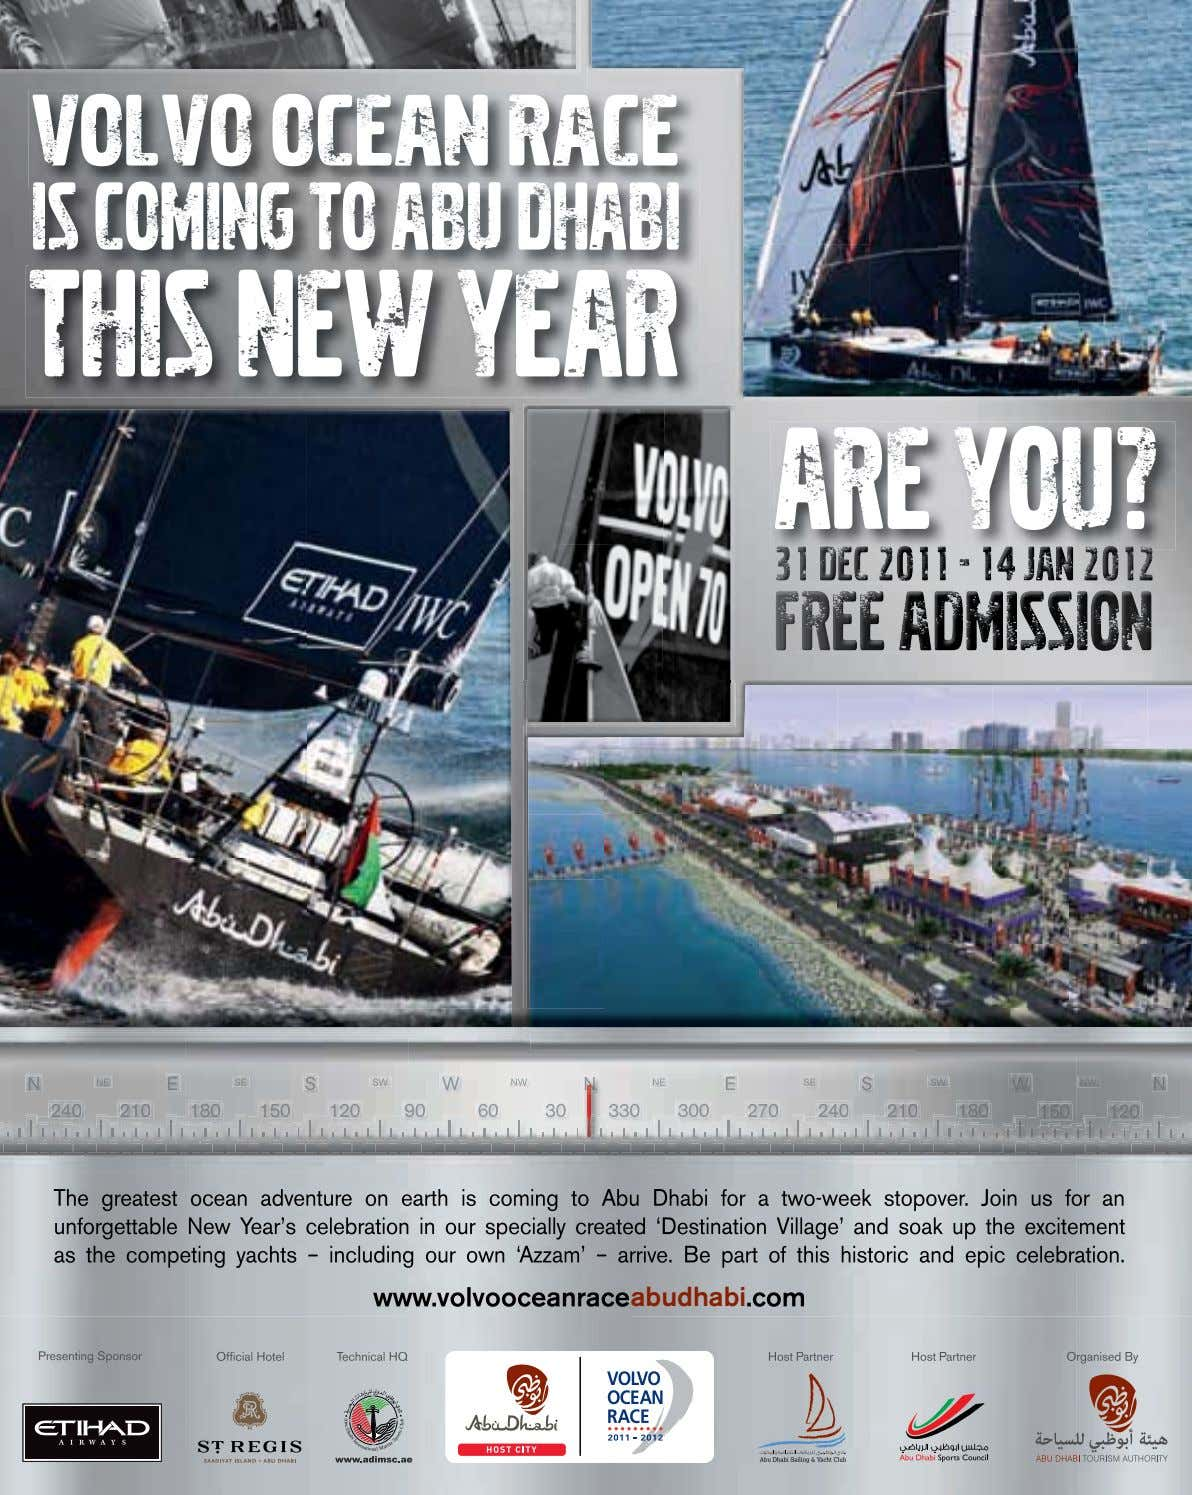 VOLVO OCEAN RACE IS COMING TO ABU DHABI THIS NEW YEAR ARE YOU? 313131 DECDECDEC